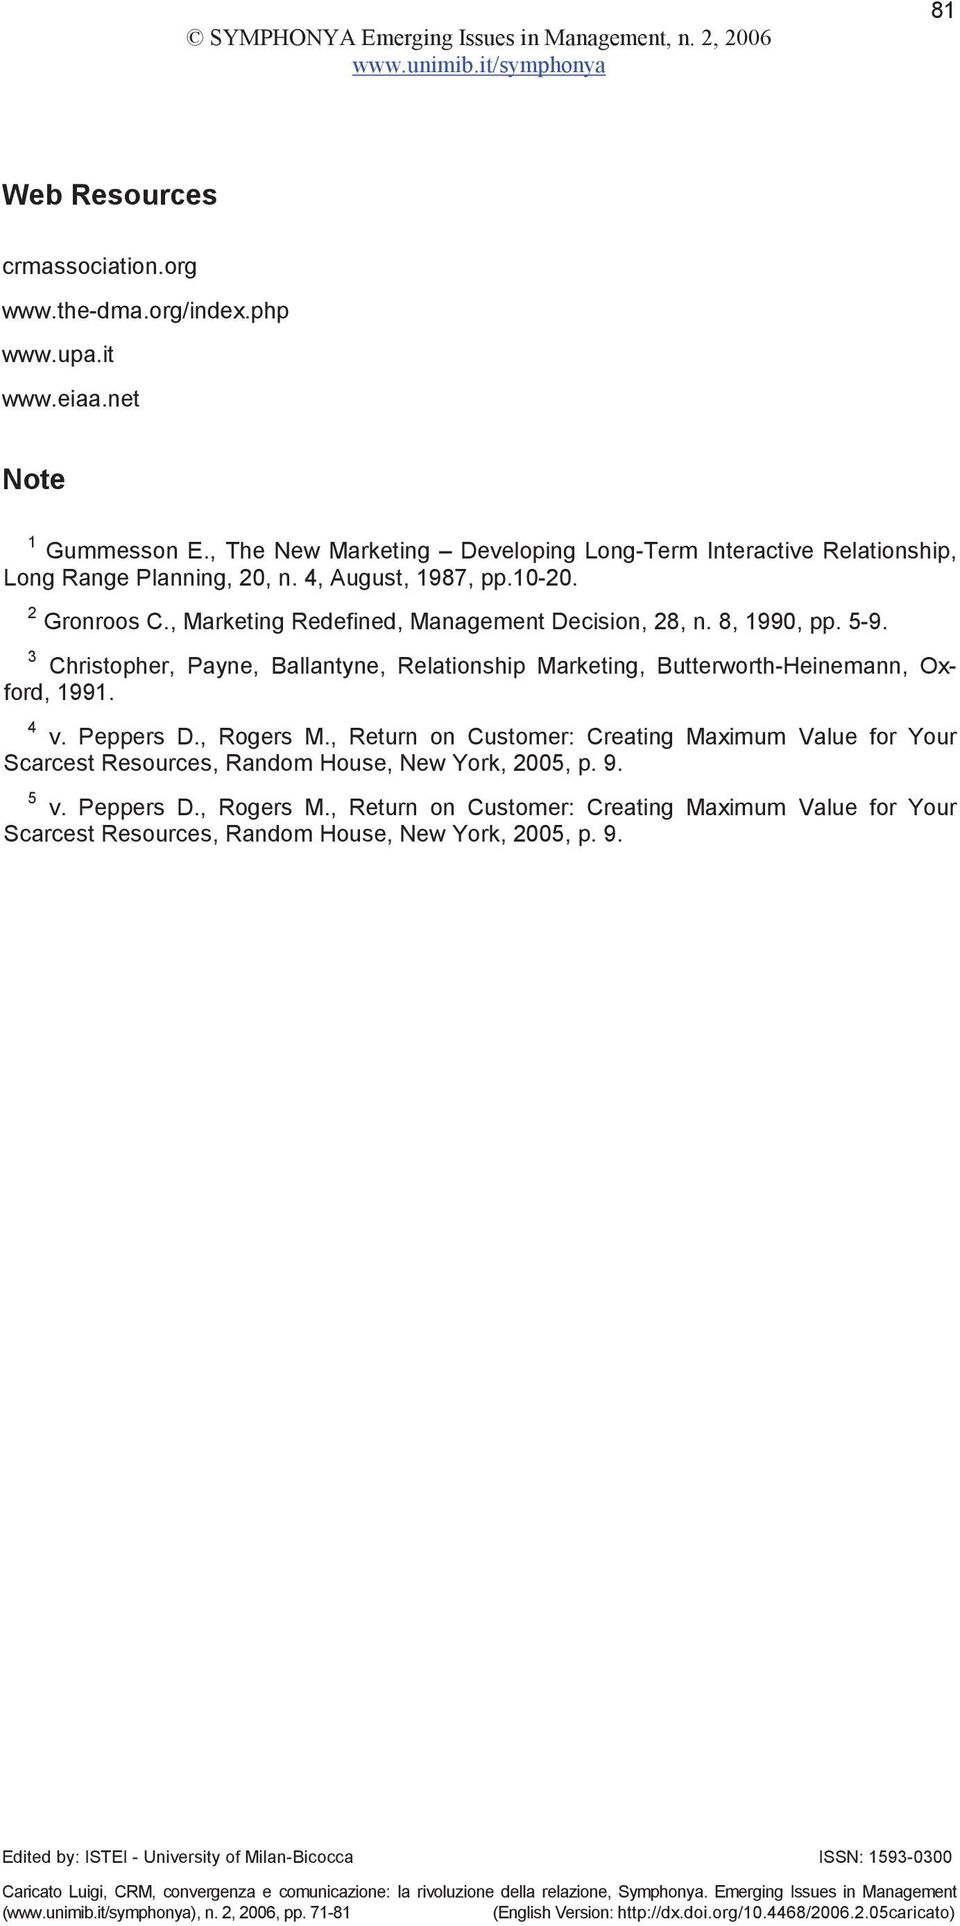 , Marketing Redefined, Management Decision, 28, n. 8, 1990, pp. 5-9. 3 Christopher, Payne, Ballantyne, Relationship Marketing, Butterworth-Heinemann, Oxford, 1991. 4 v.